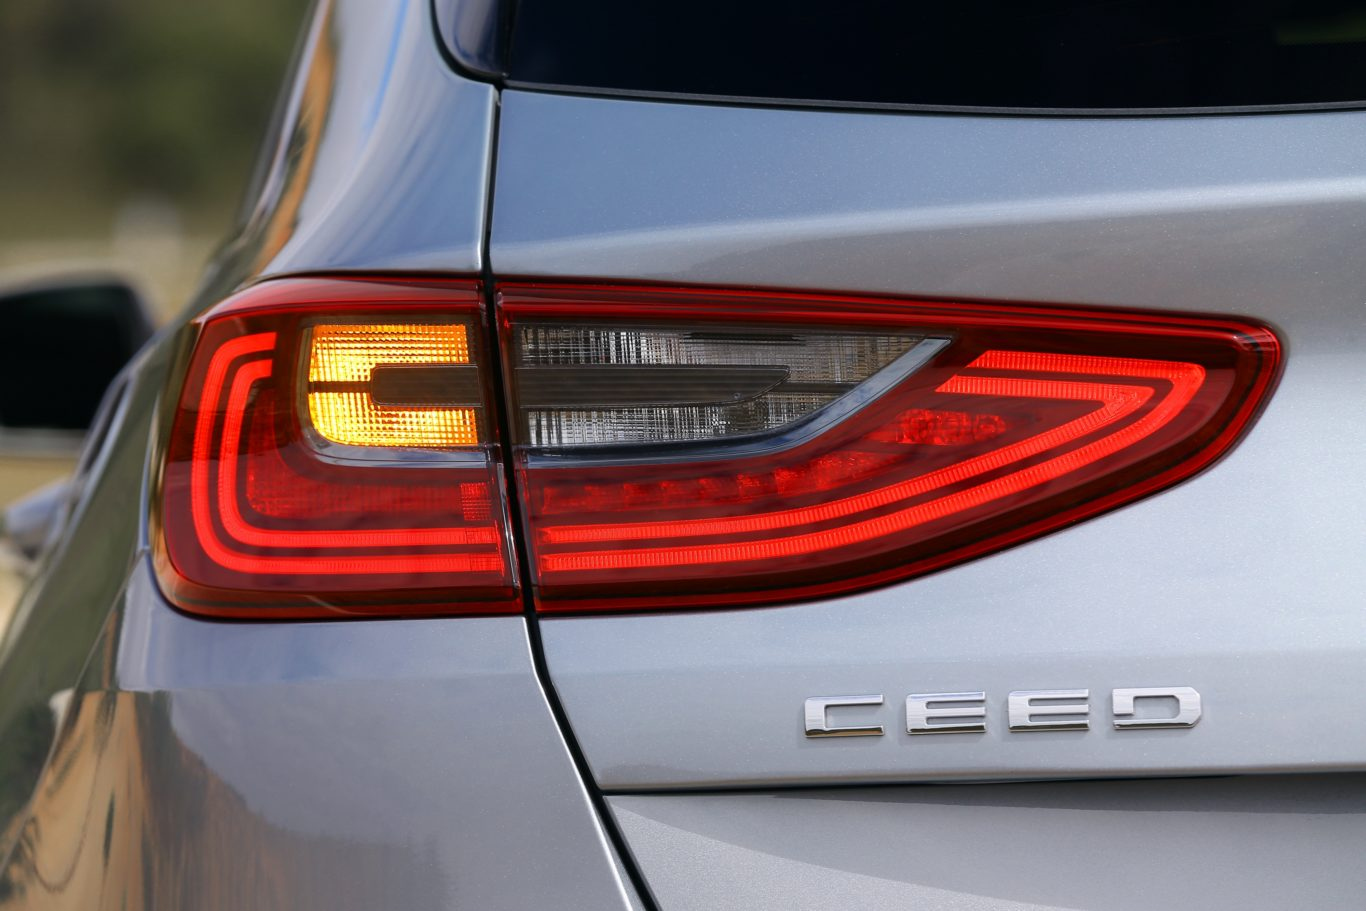 The Ceed name has proved popular across Europe